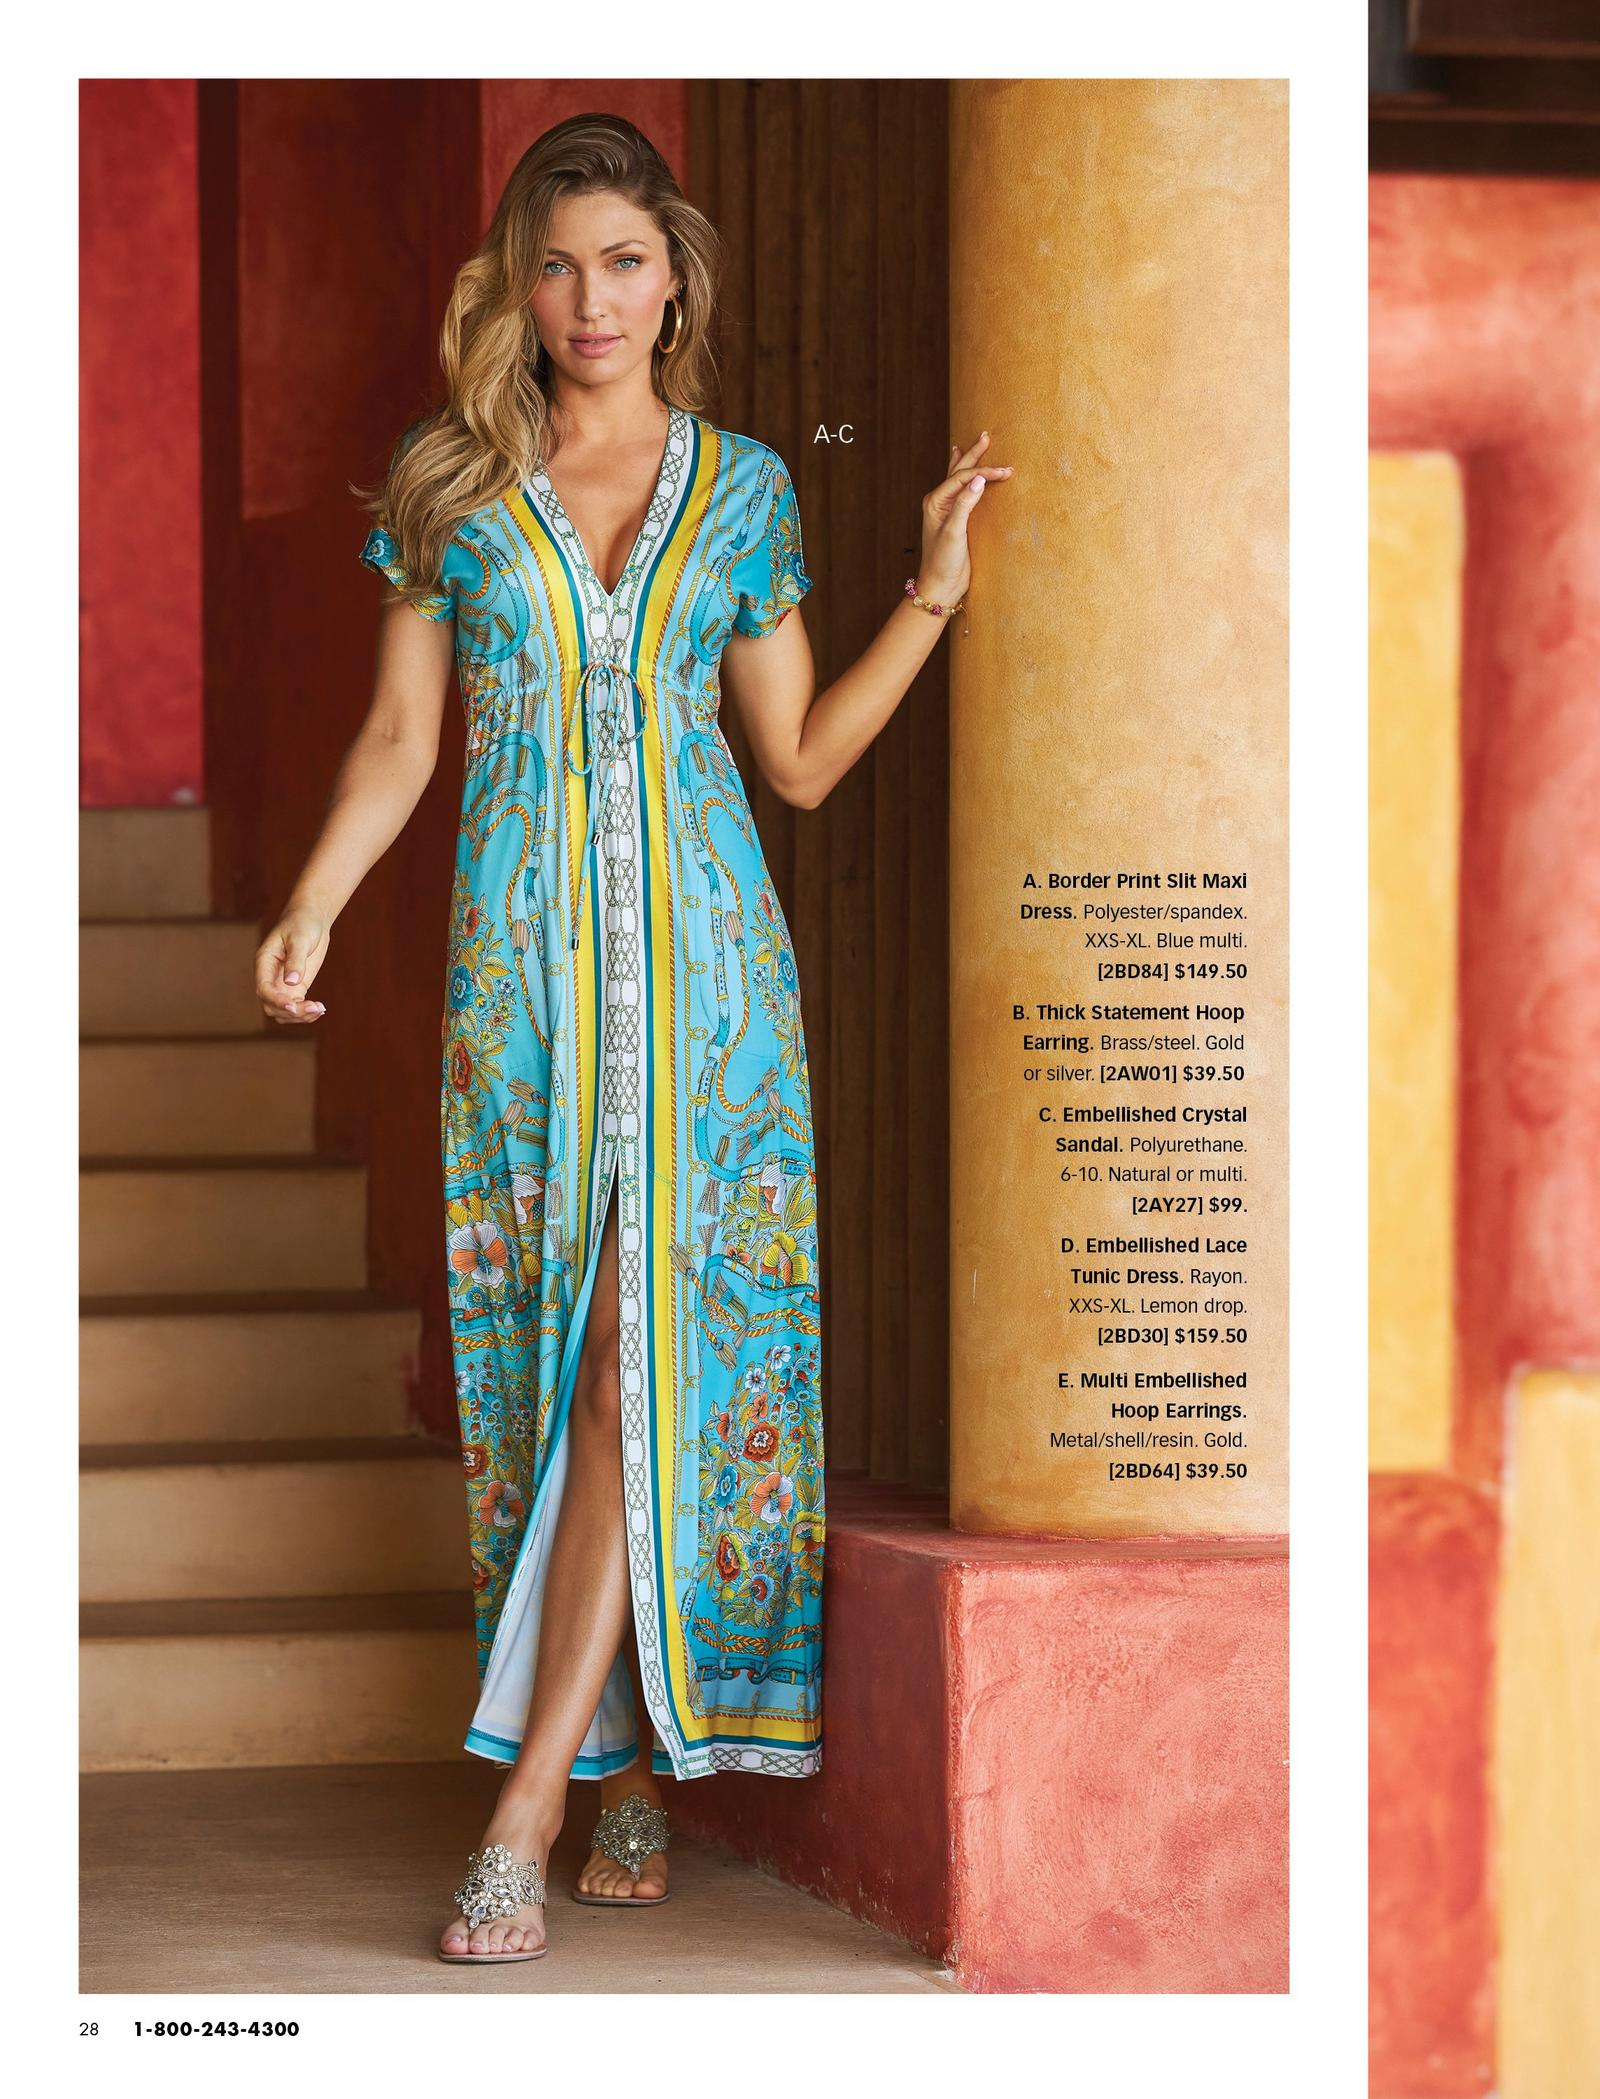 model wearing a blue border print slit maxi dress, gold hoop earrings, and silver crystal embellished sandals.